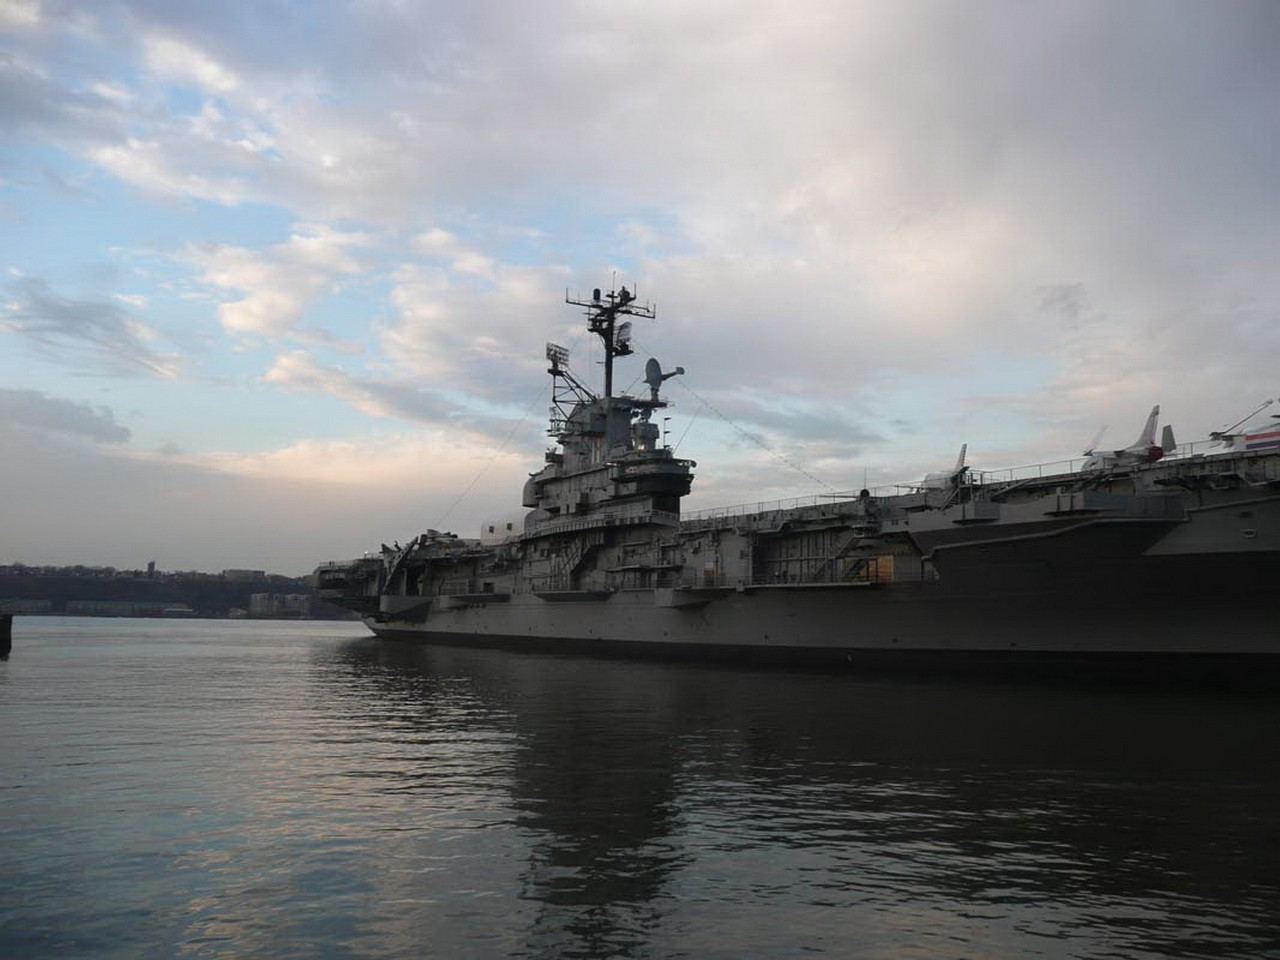 USS Intrepid (CV-11) - Caminar